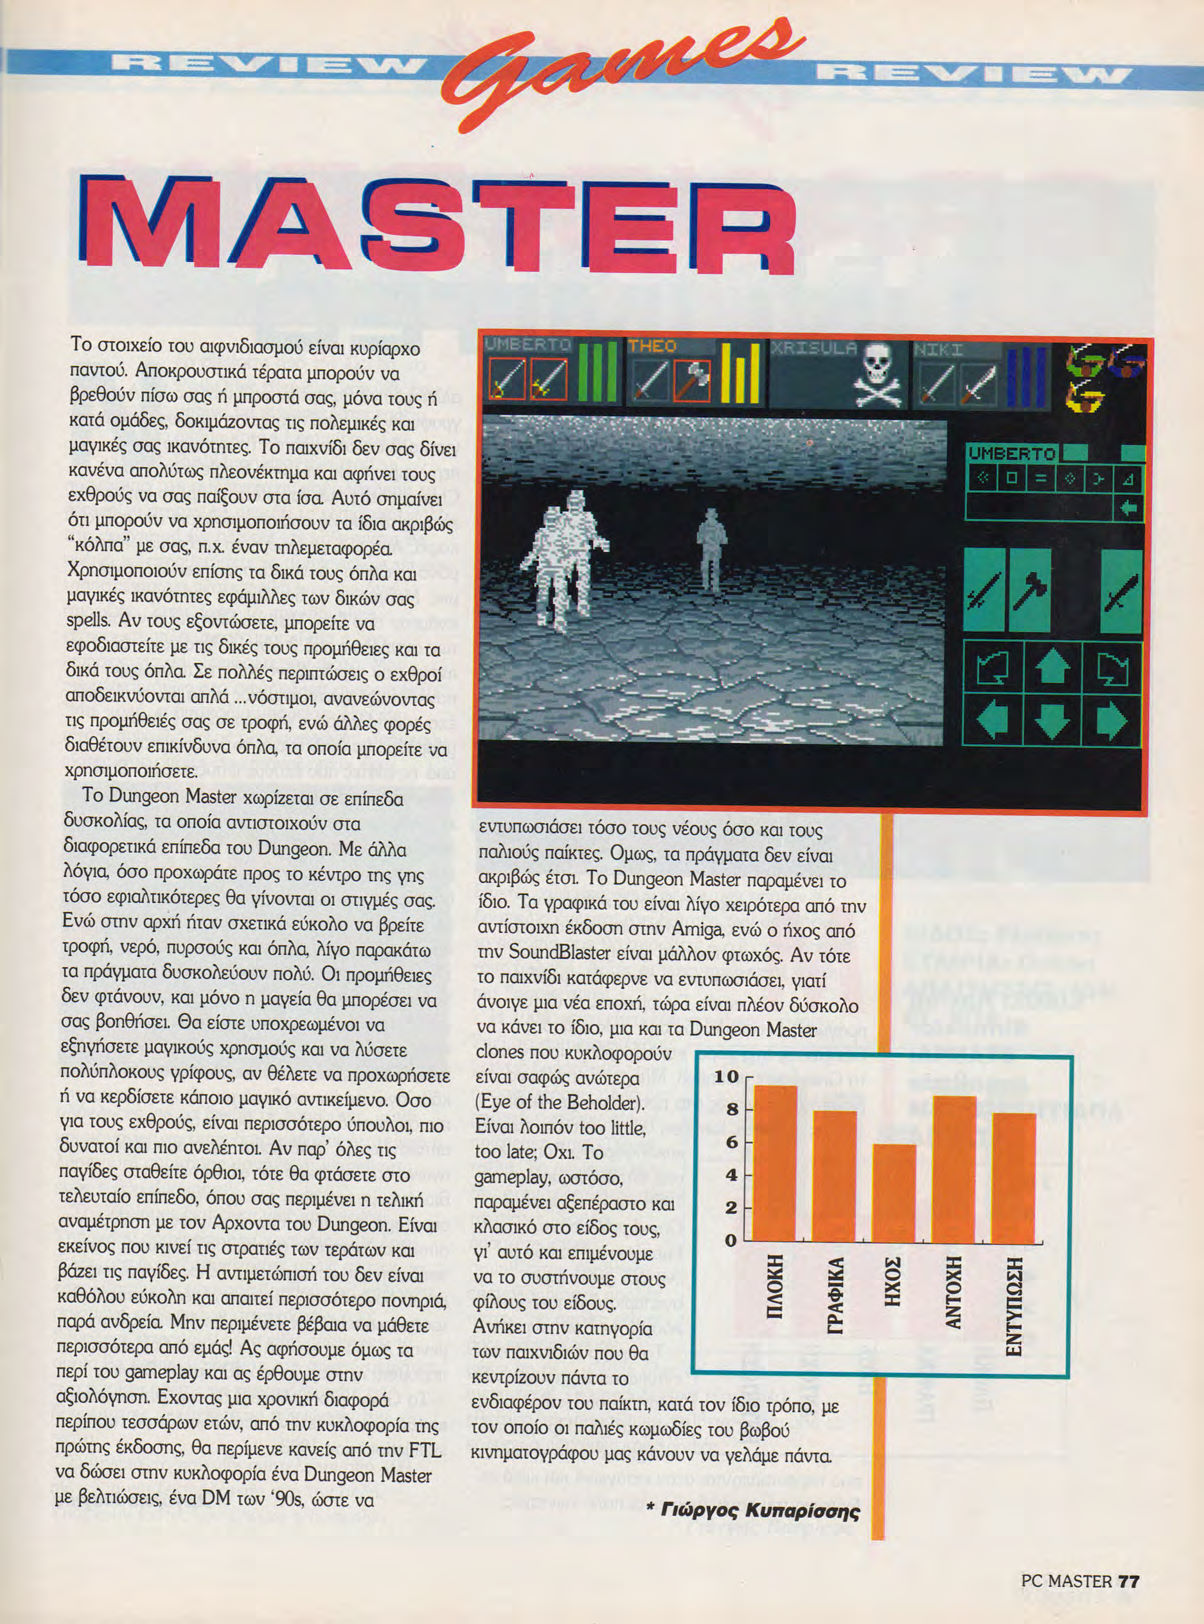 Dungeon Master for PC Review published in Greek magazine 'PC Master', Issue #34 November 1992, Page 77